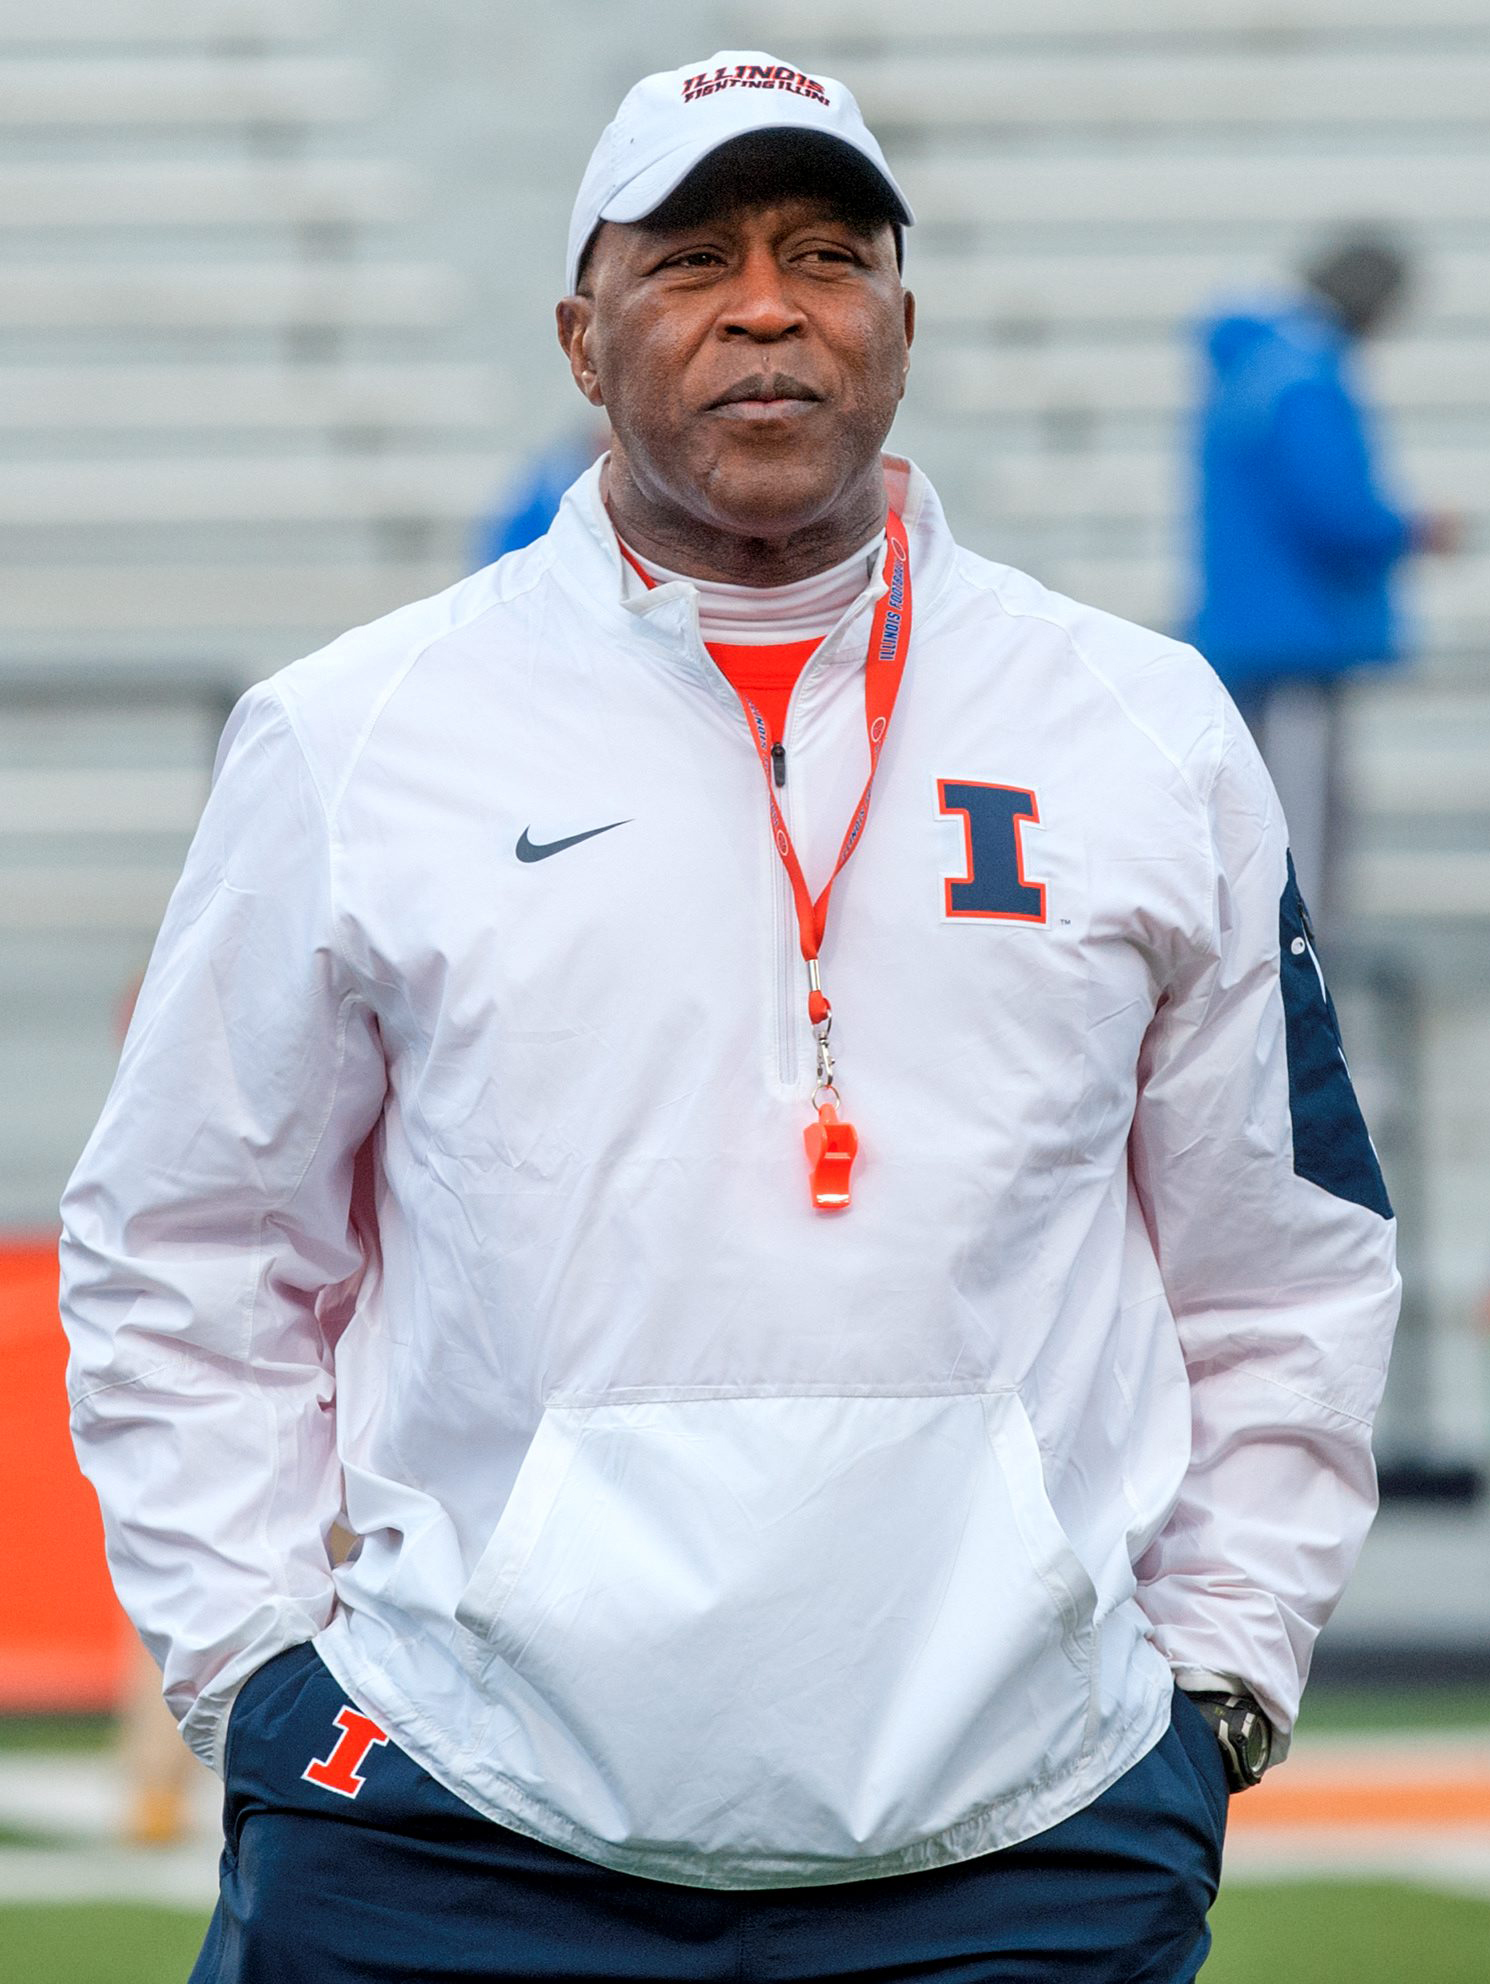 In this April 1, 2016, photo, first-year Illinois football coach Lovie Smith oversees his team's practice at Memorial Stadium in Champaign, Ill. Smith brings decades of NFL experience that both fans and players see as an upgrade and potential starting poi